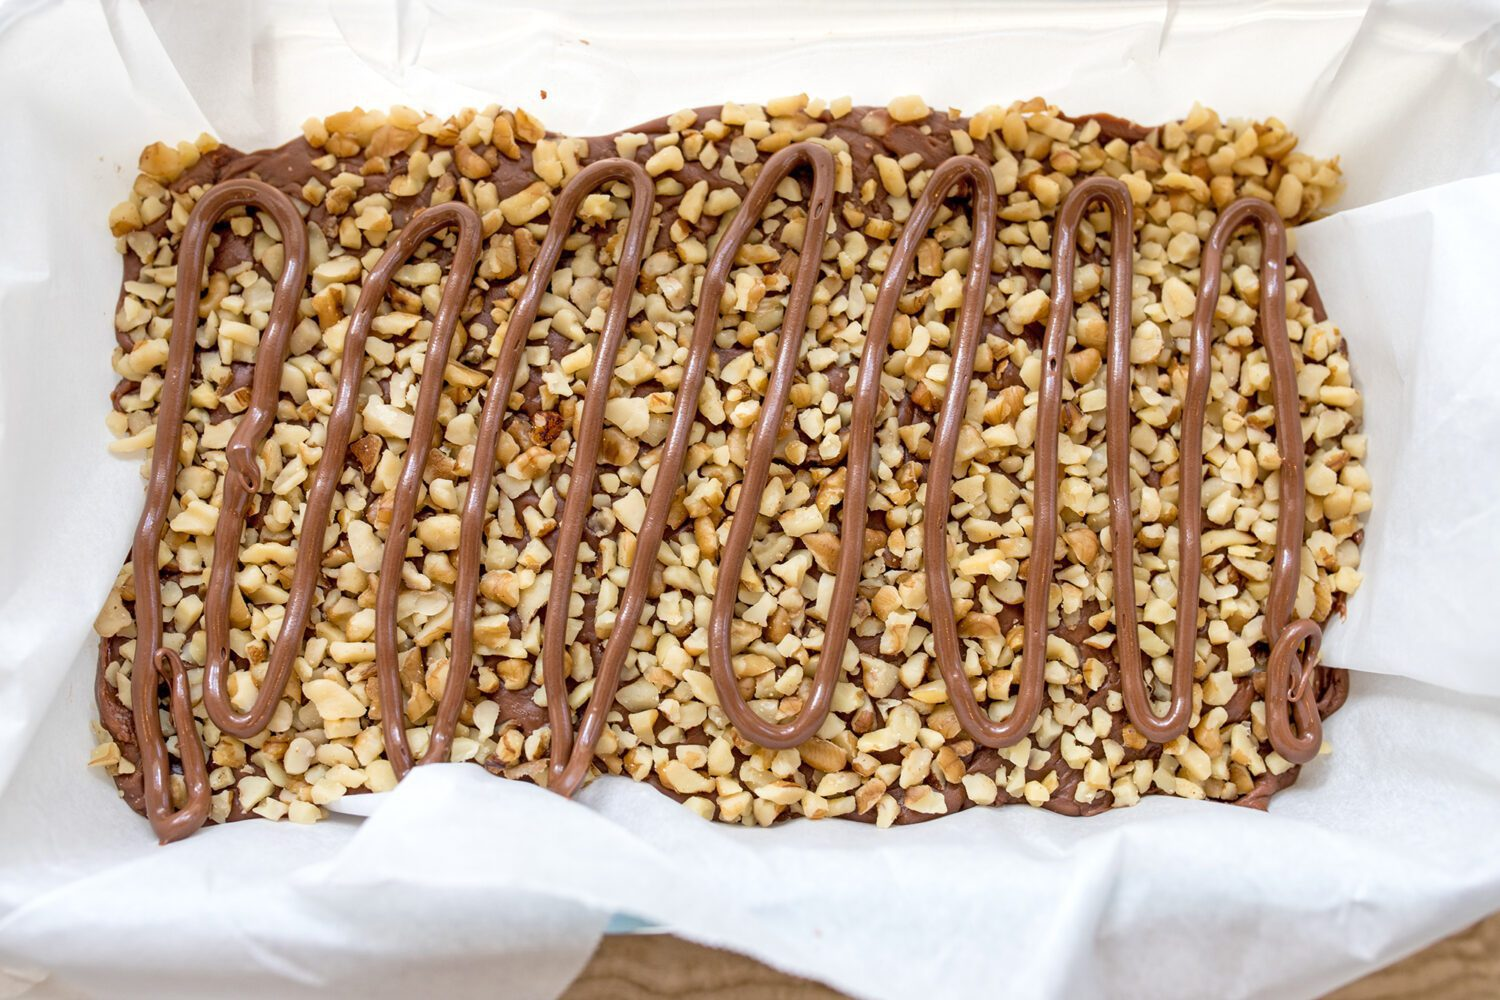 fudge topped with finely chopped walnuts and Nutella in a loaf pan